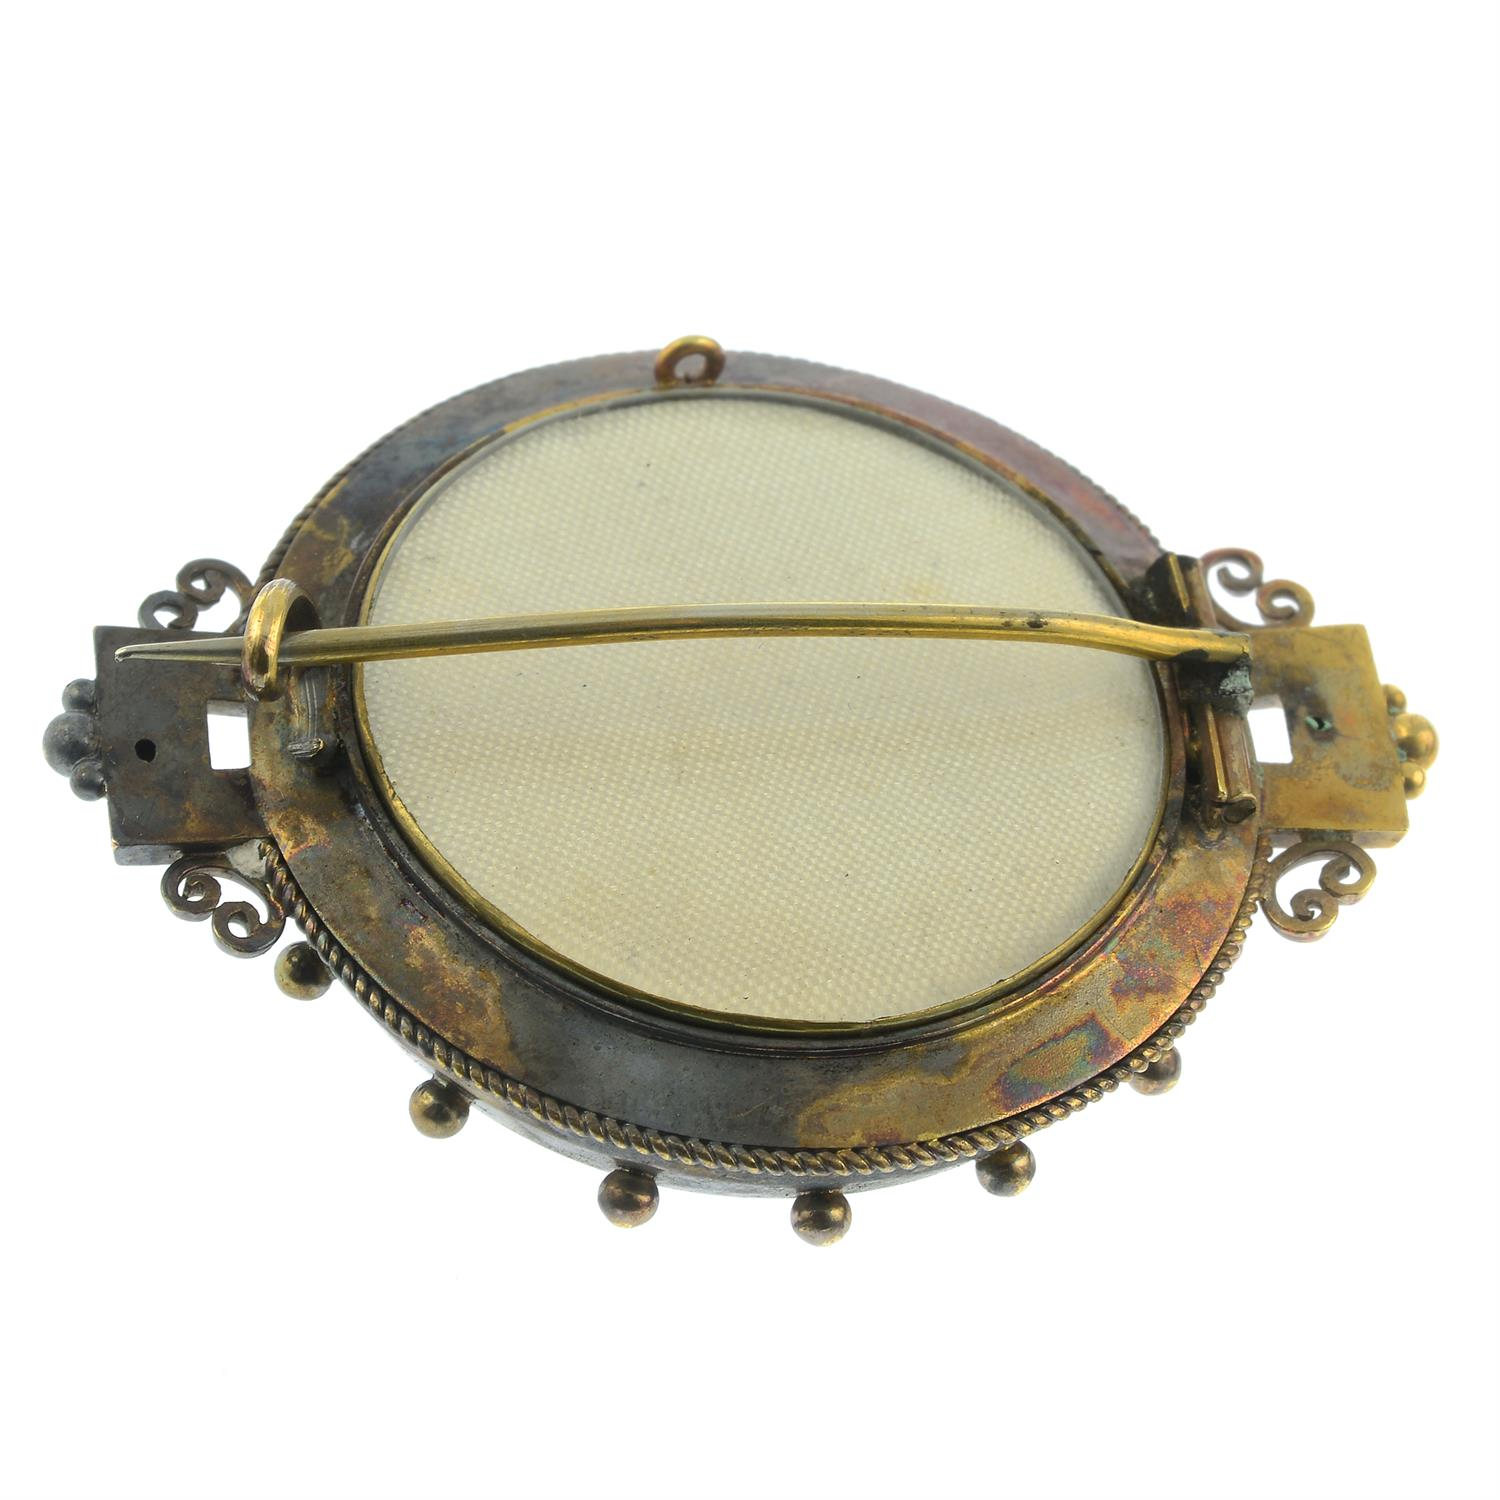 A late 19th century 18ct gold split pearl brooch. - Image 2 of 2